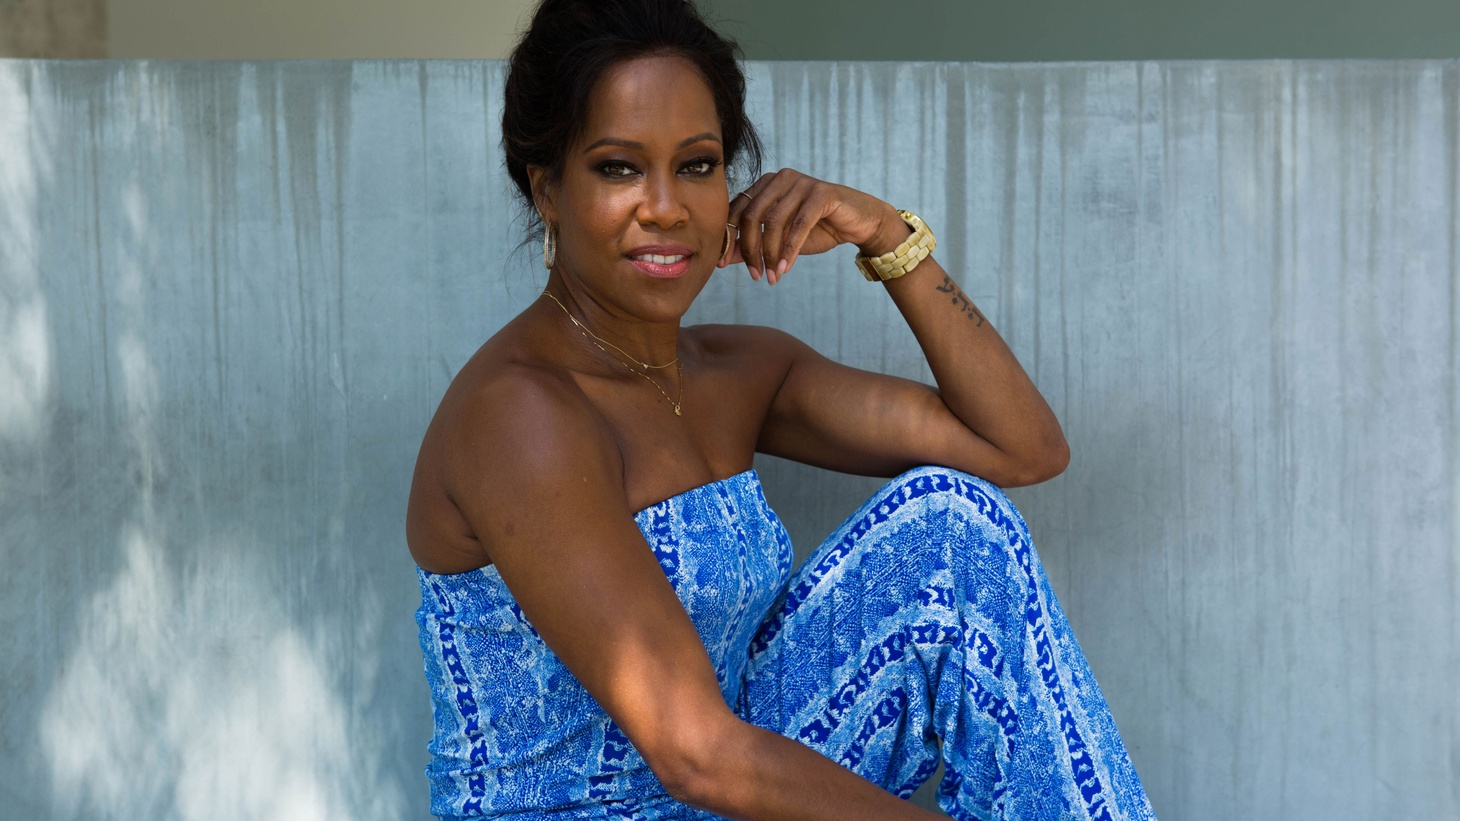 Actress and director Regina King made a name for herself early in her career in films like Friday and Boyz n the Hood. She's gone on to win two Emmy Awards for her role on ABC's American Crime and is nominated again this year. For her Guest DJ set, she moves from some sexy tracks to heartfelt selections dedicated to her family.